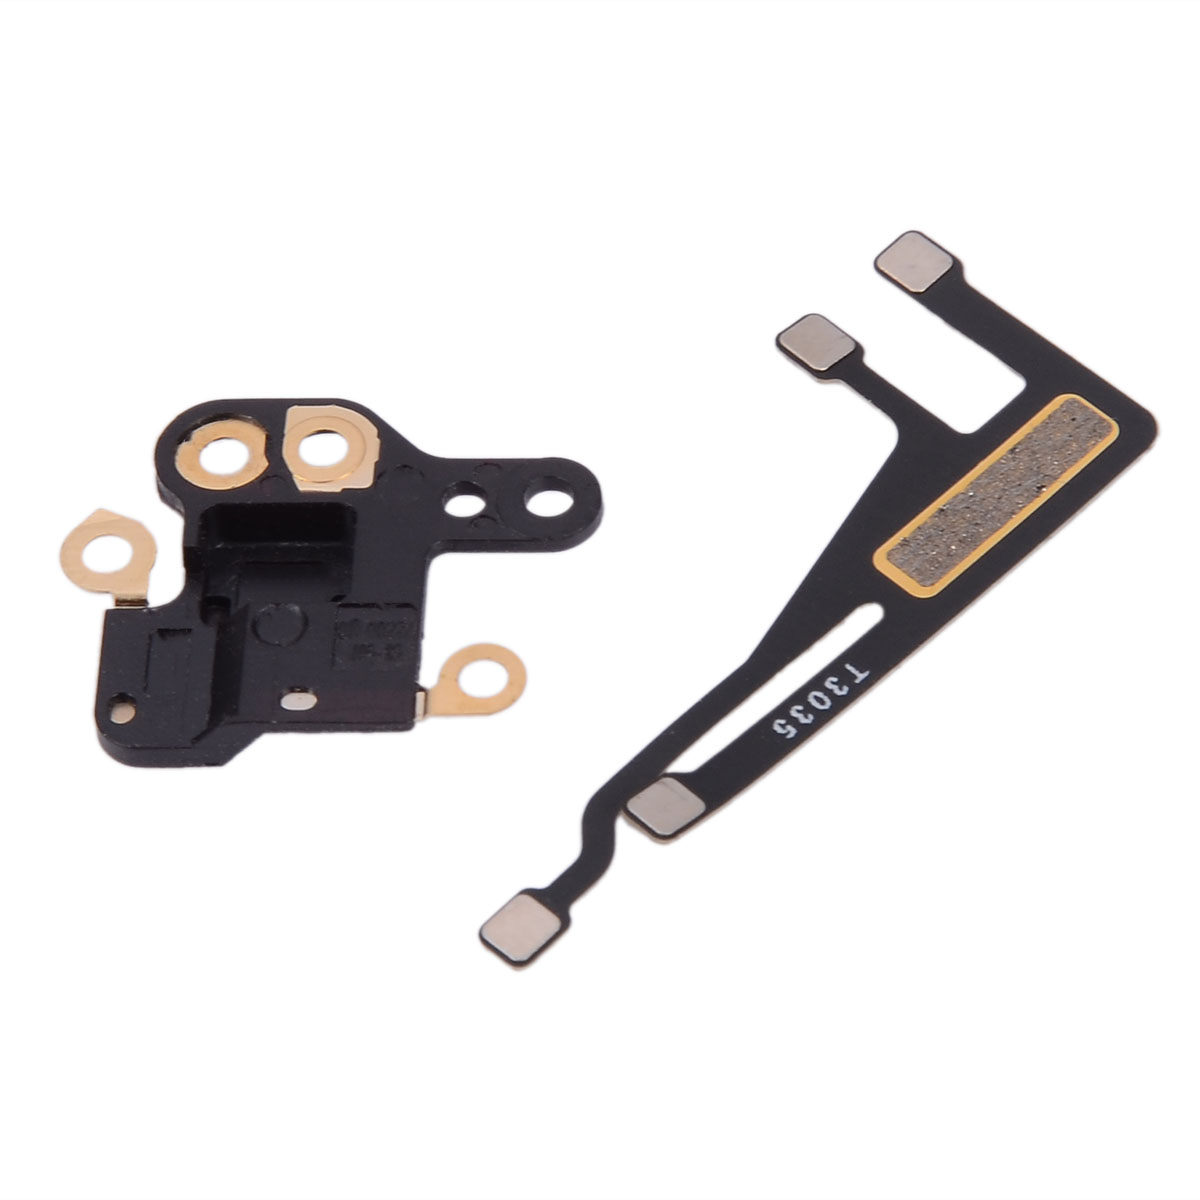 New WiFi Antenna Signal Flex Cable Ribbon Bracket + GPS Cover Replacement Repair Parts For IPhone 6 4.7